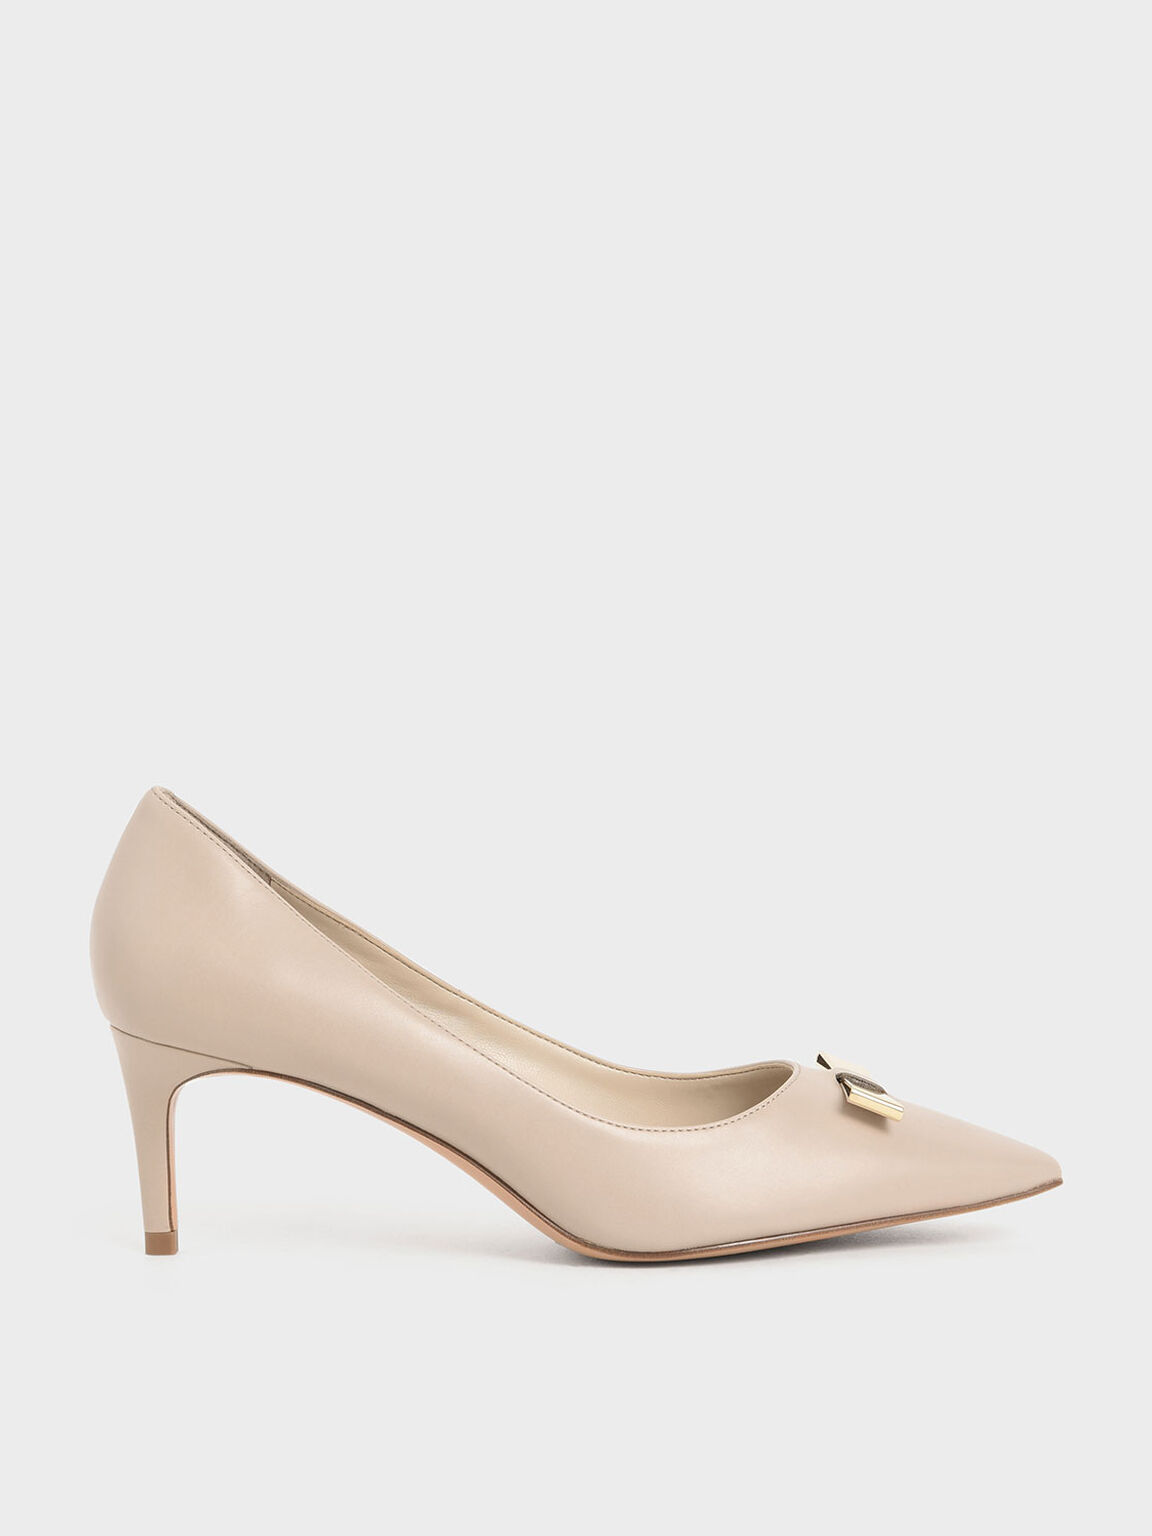 Metallic Bow Pumps, Nude, hi-res